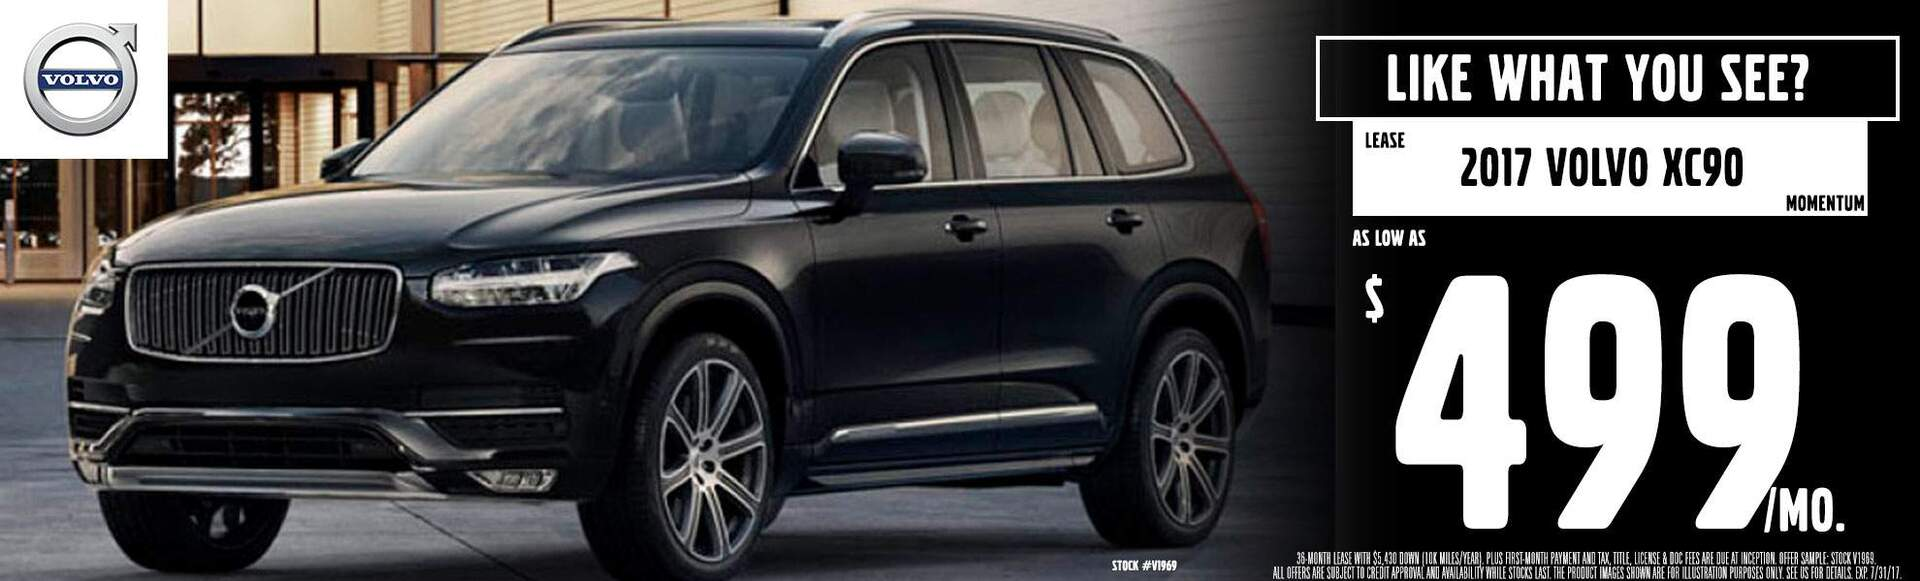 Autobarn Volvo July Lease XC90 for $499mo